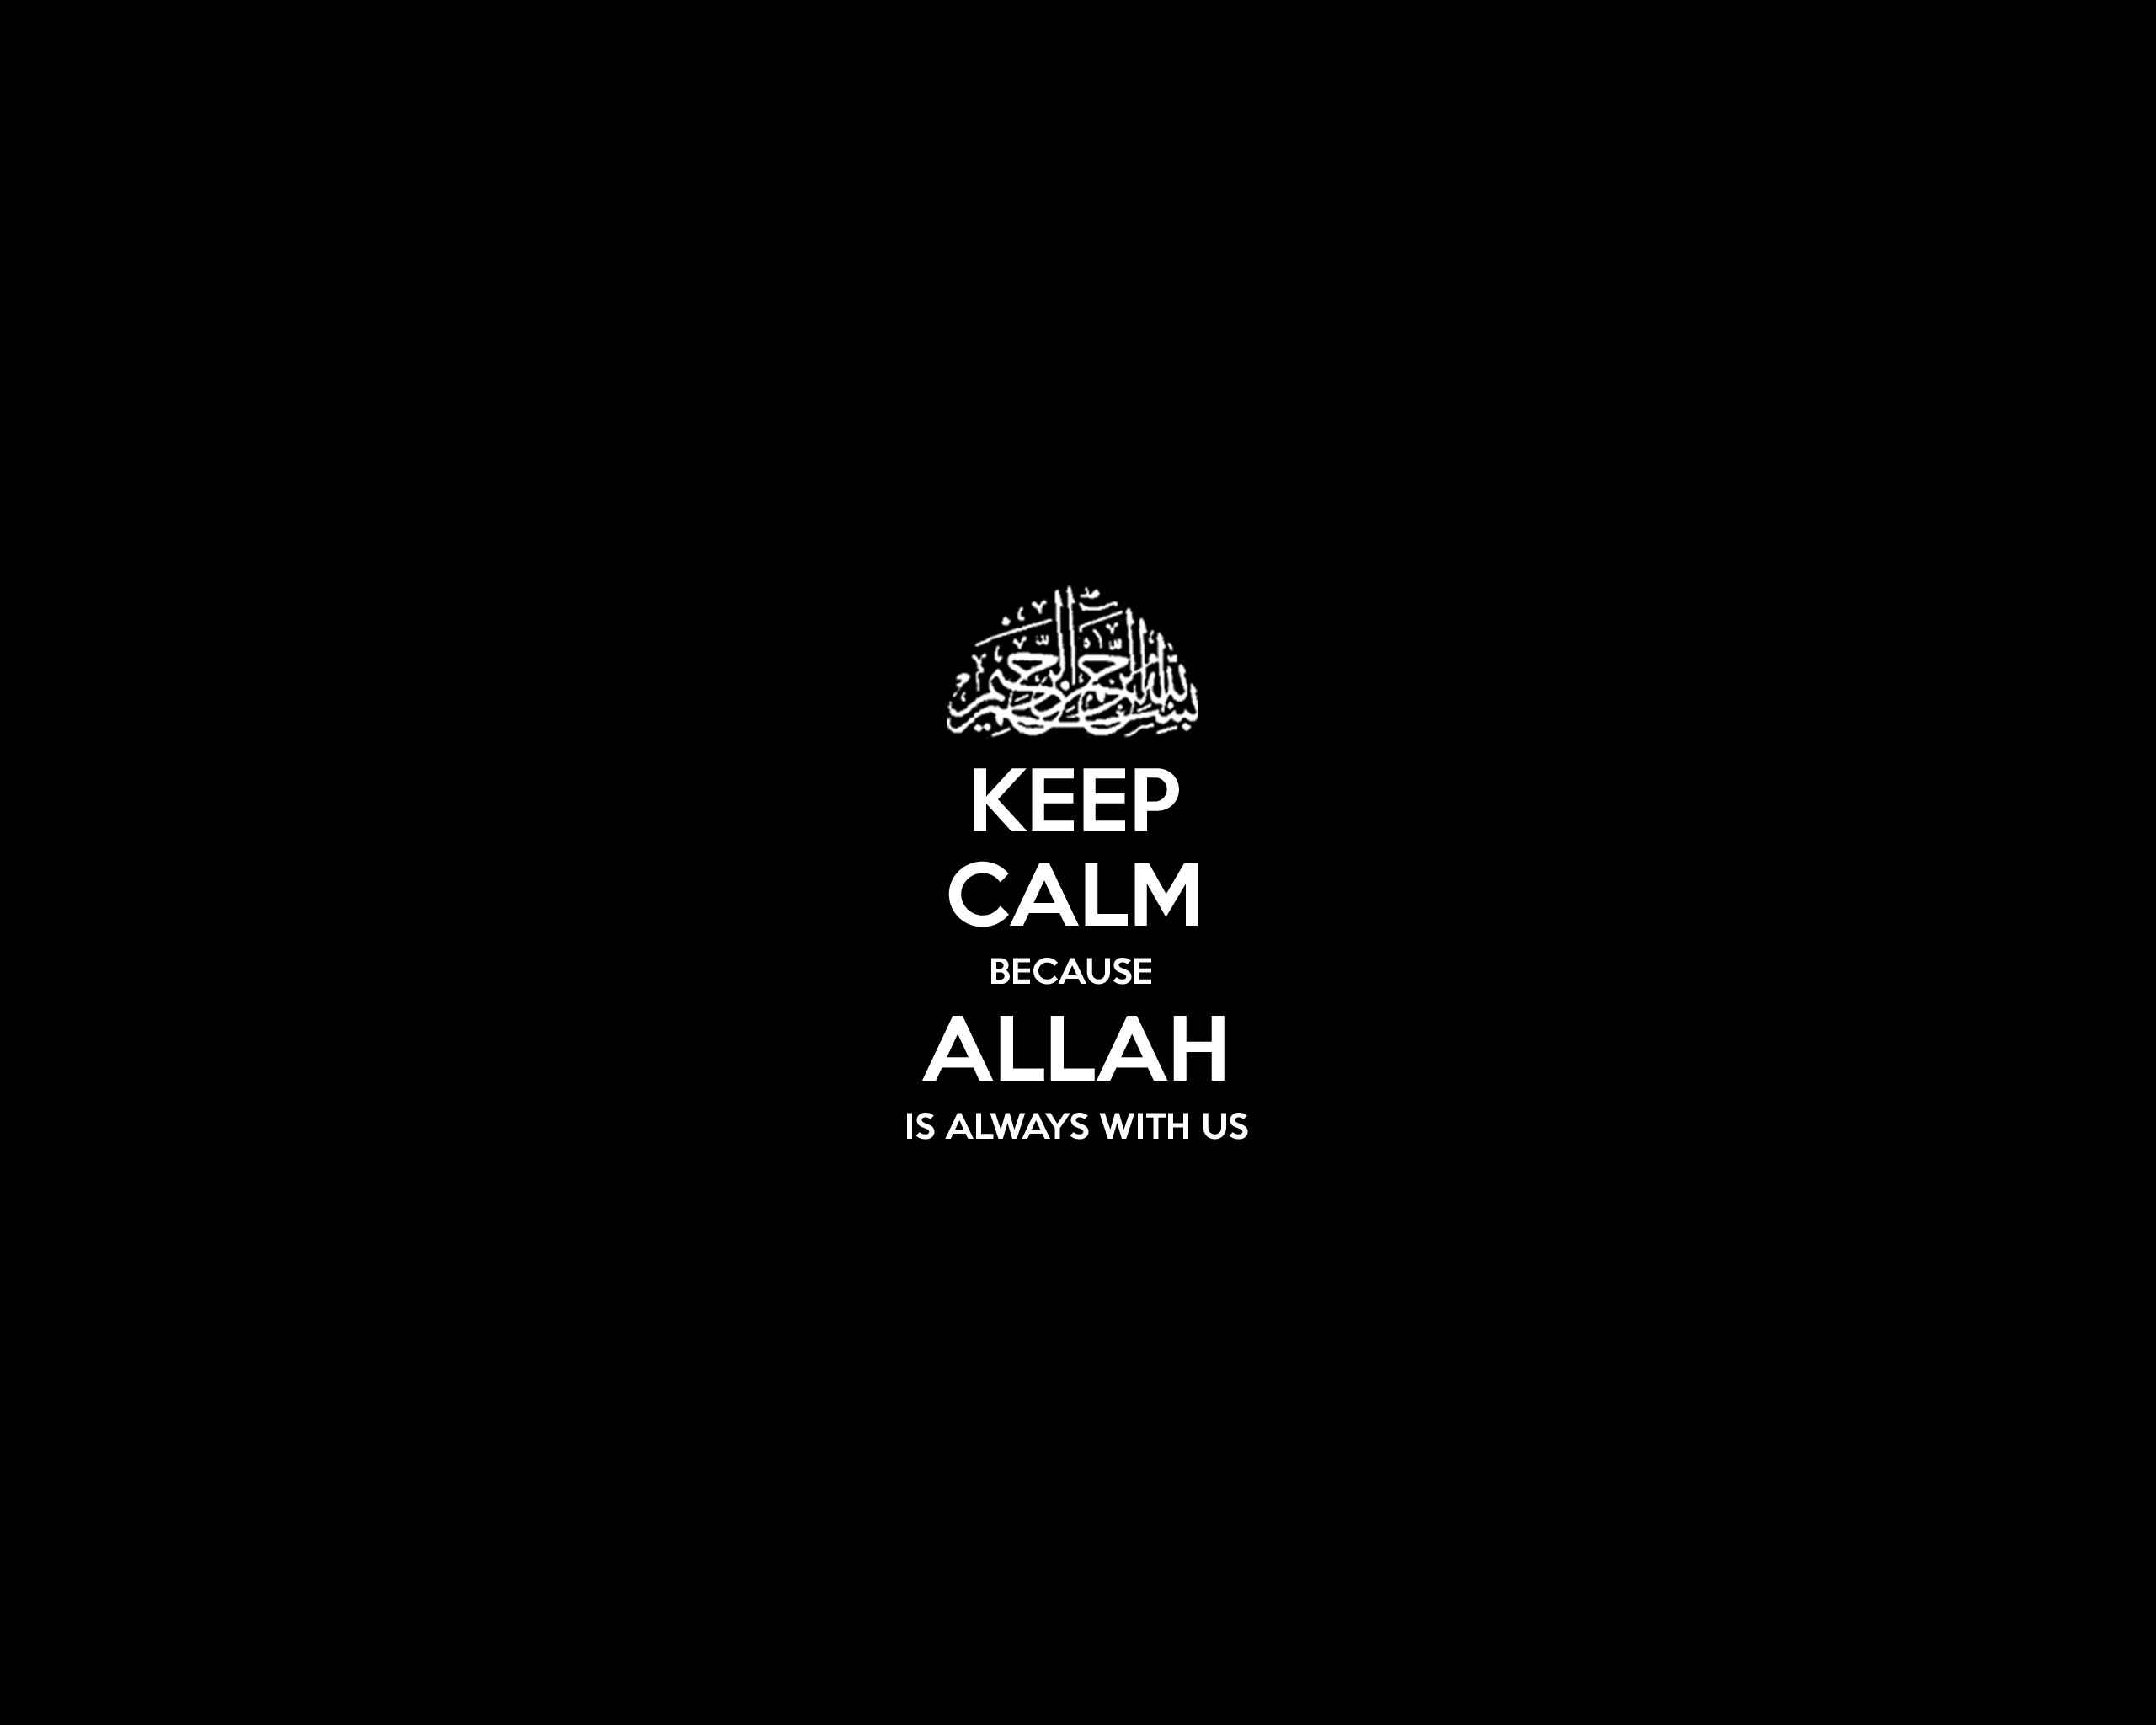 Islam Keep Calm And Motivational Posters Wallpaper